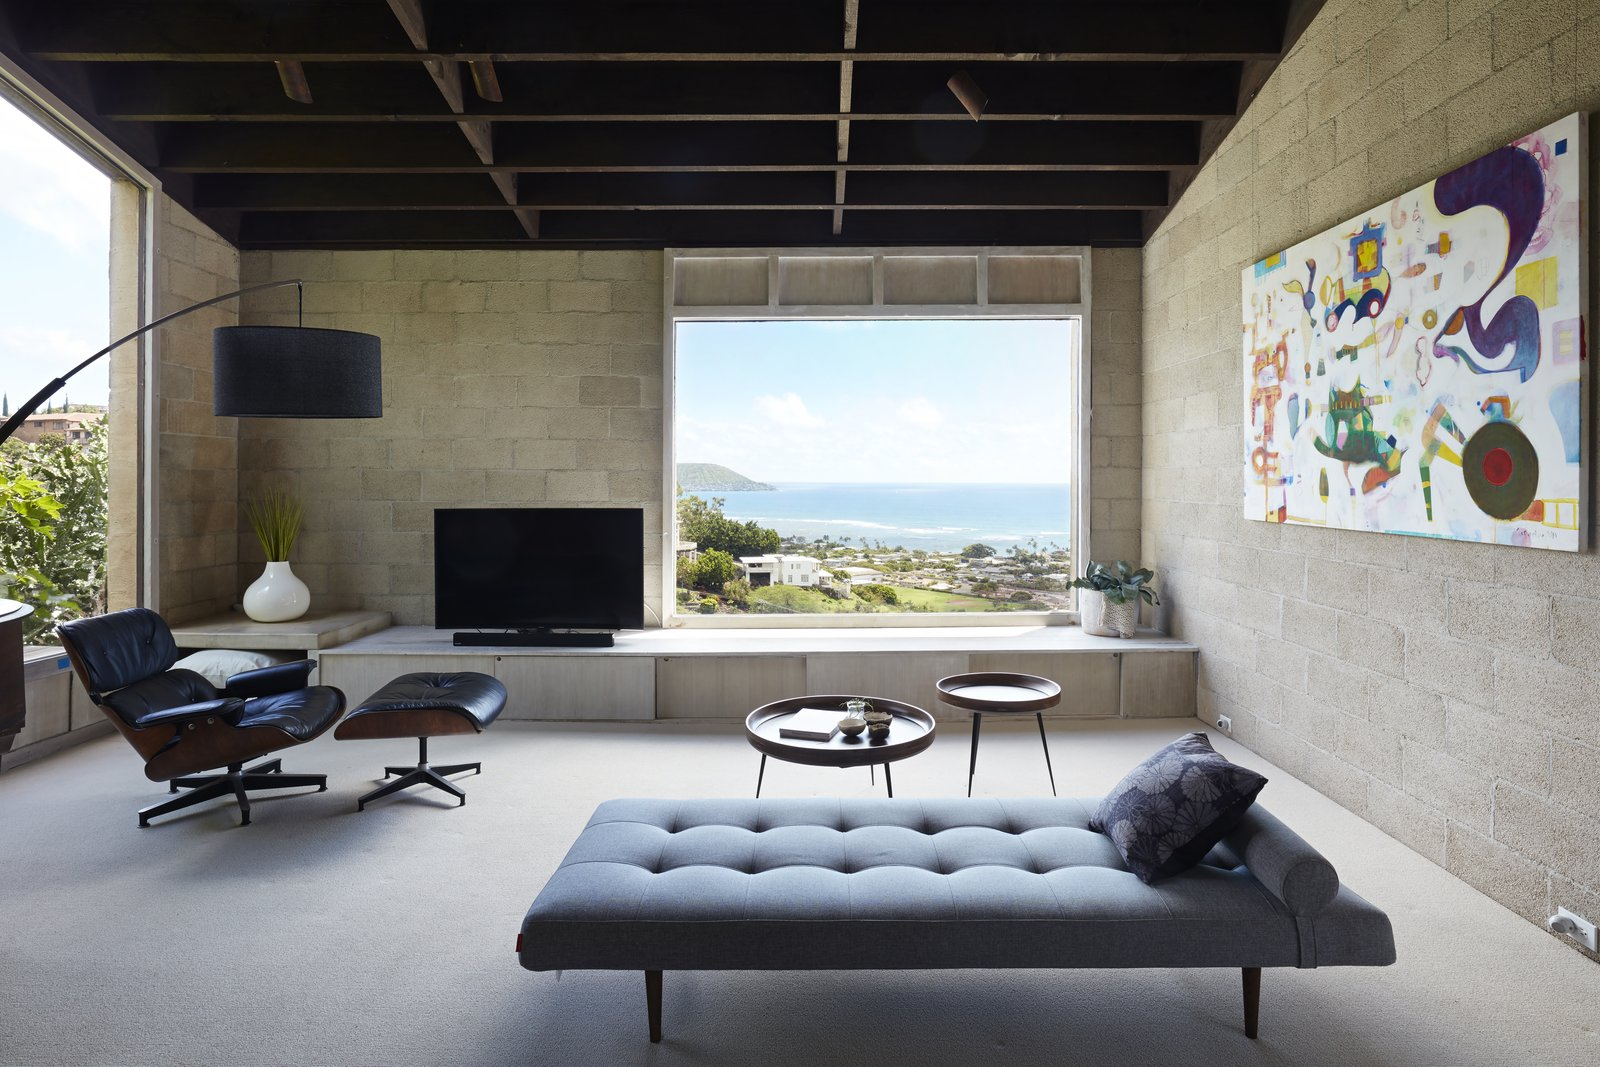 Living, Recliner, Coffee Tables, Ceiling, Carpet, Bench, Chair, Floor, and Ottomans Large picture windows in every room connect occupants to Pacific Ocean vistas.   Best Living Floor Carpet Photos from A Famed Japanese Composer's Effortless Honolulu Hideout Asks $2.95M